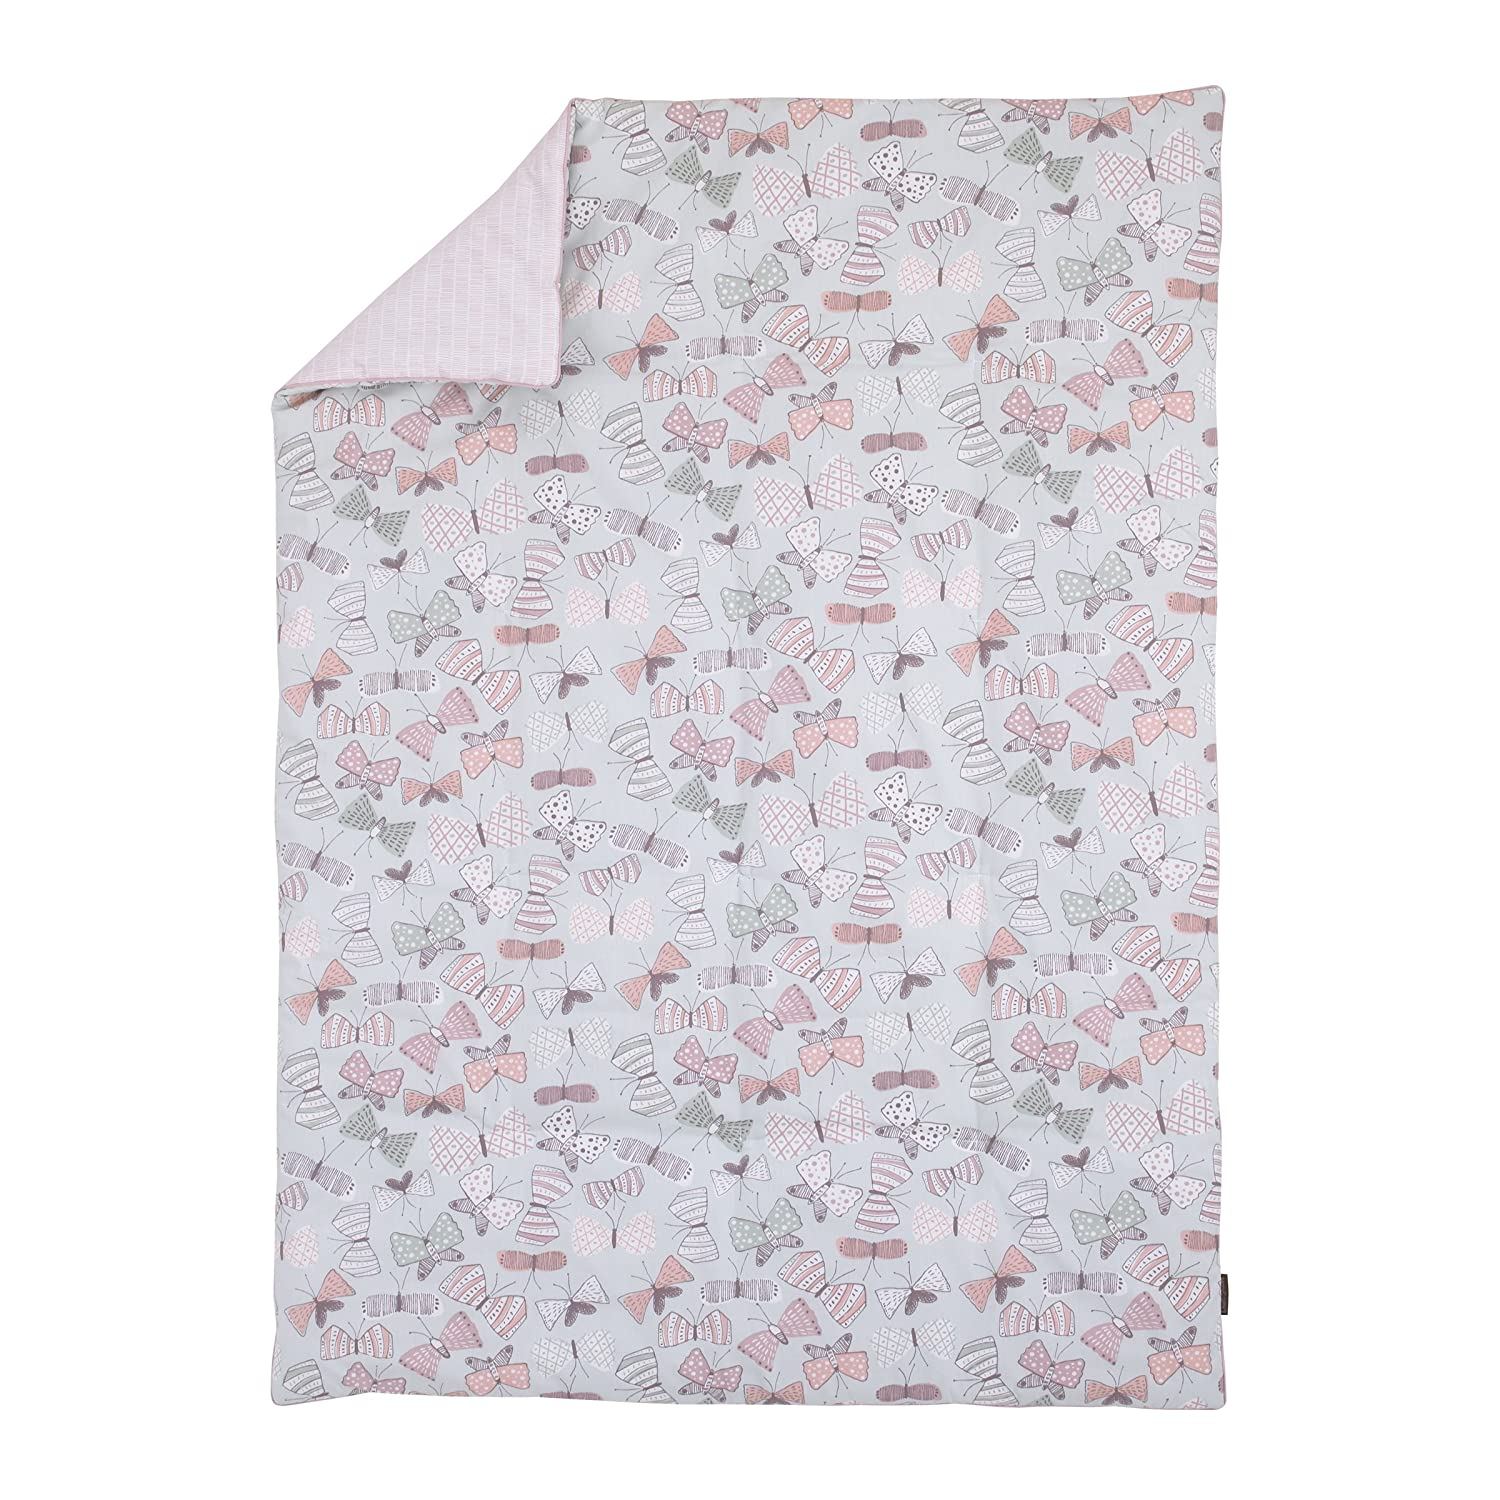 Dwell Studio Arden Butterfly Print Comforter, Violet/Pink/Gray Crown Crafts Inc 2781001